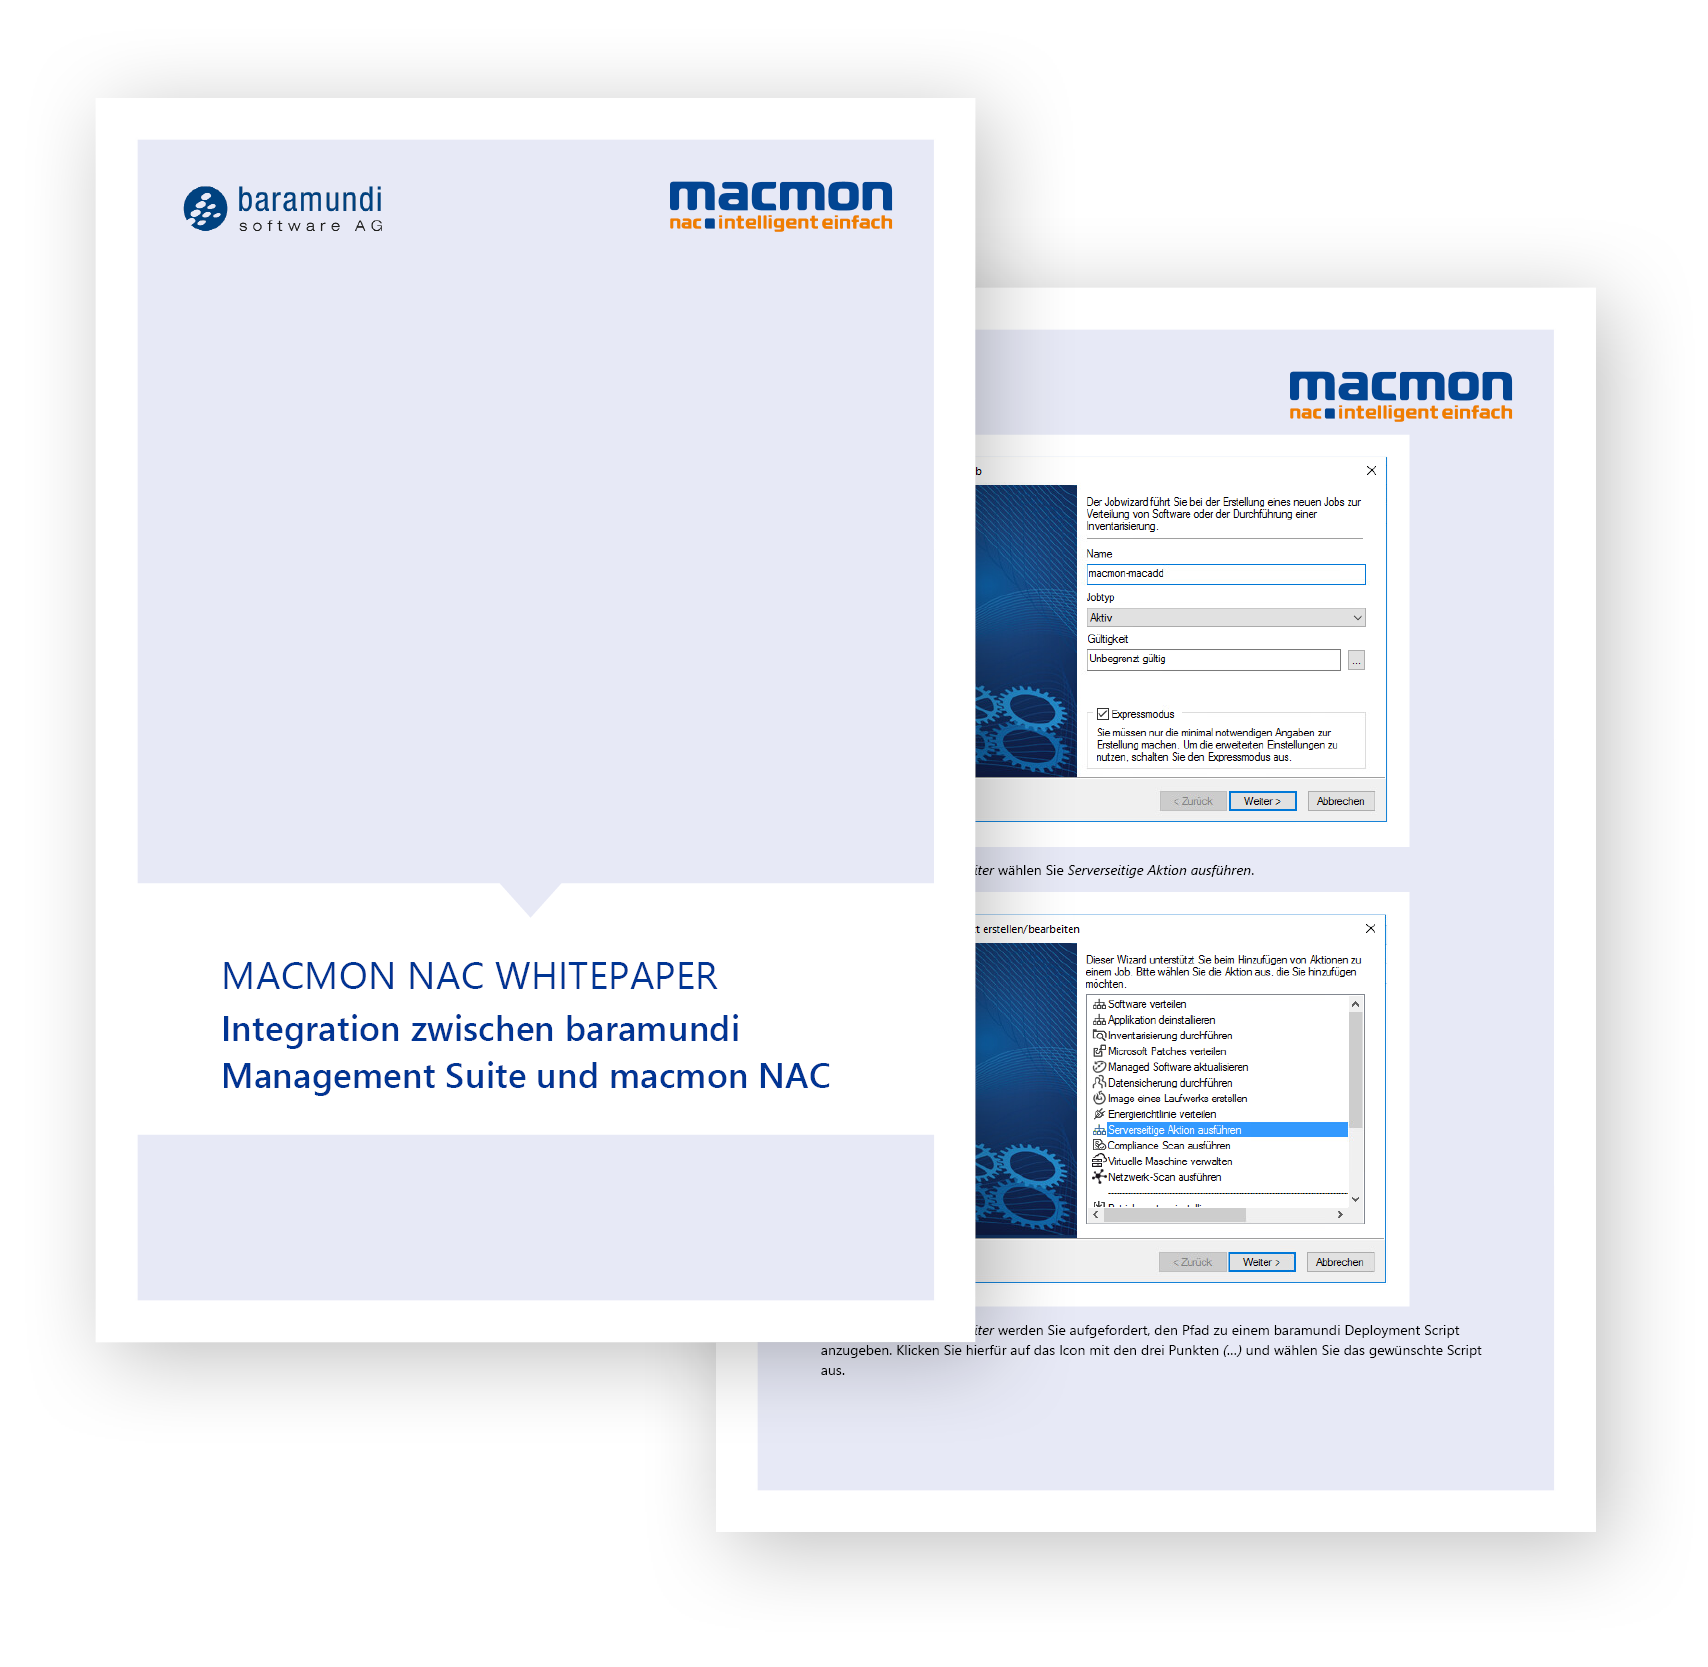 macmon_web_whitepaper_Grafiken_Barracuda